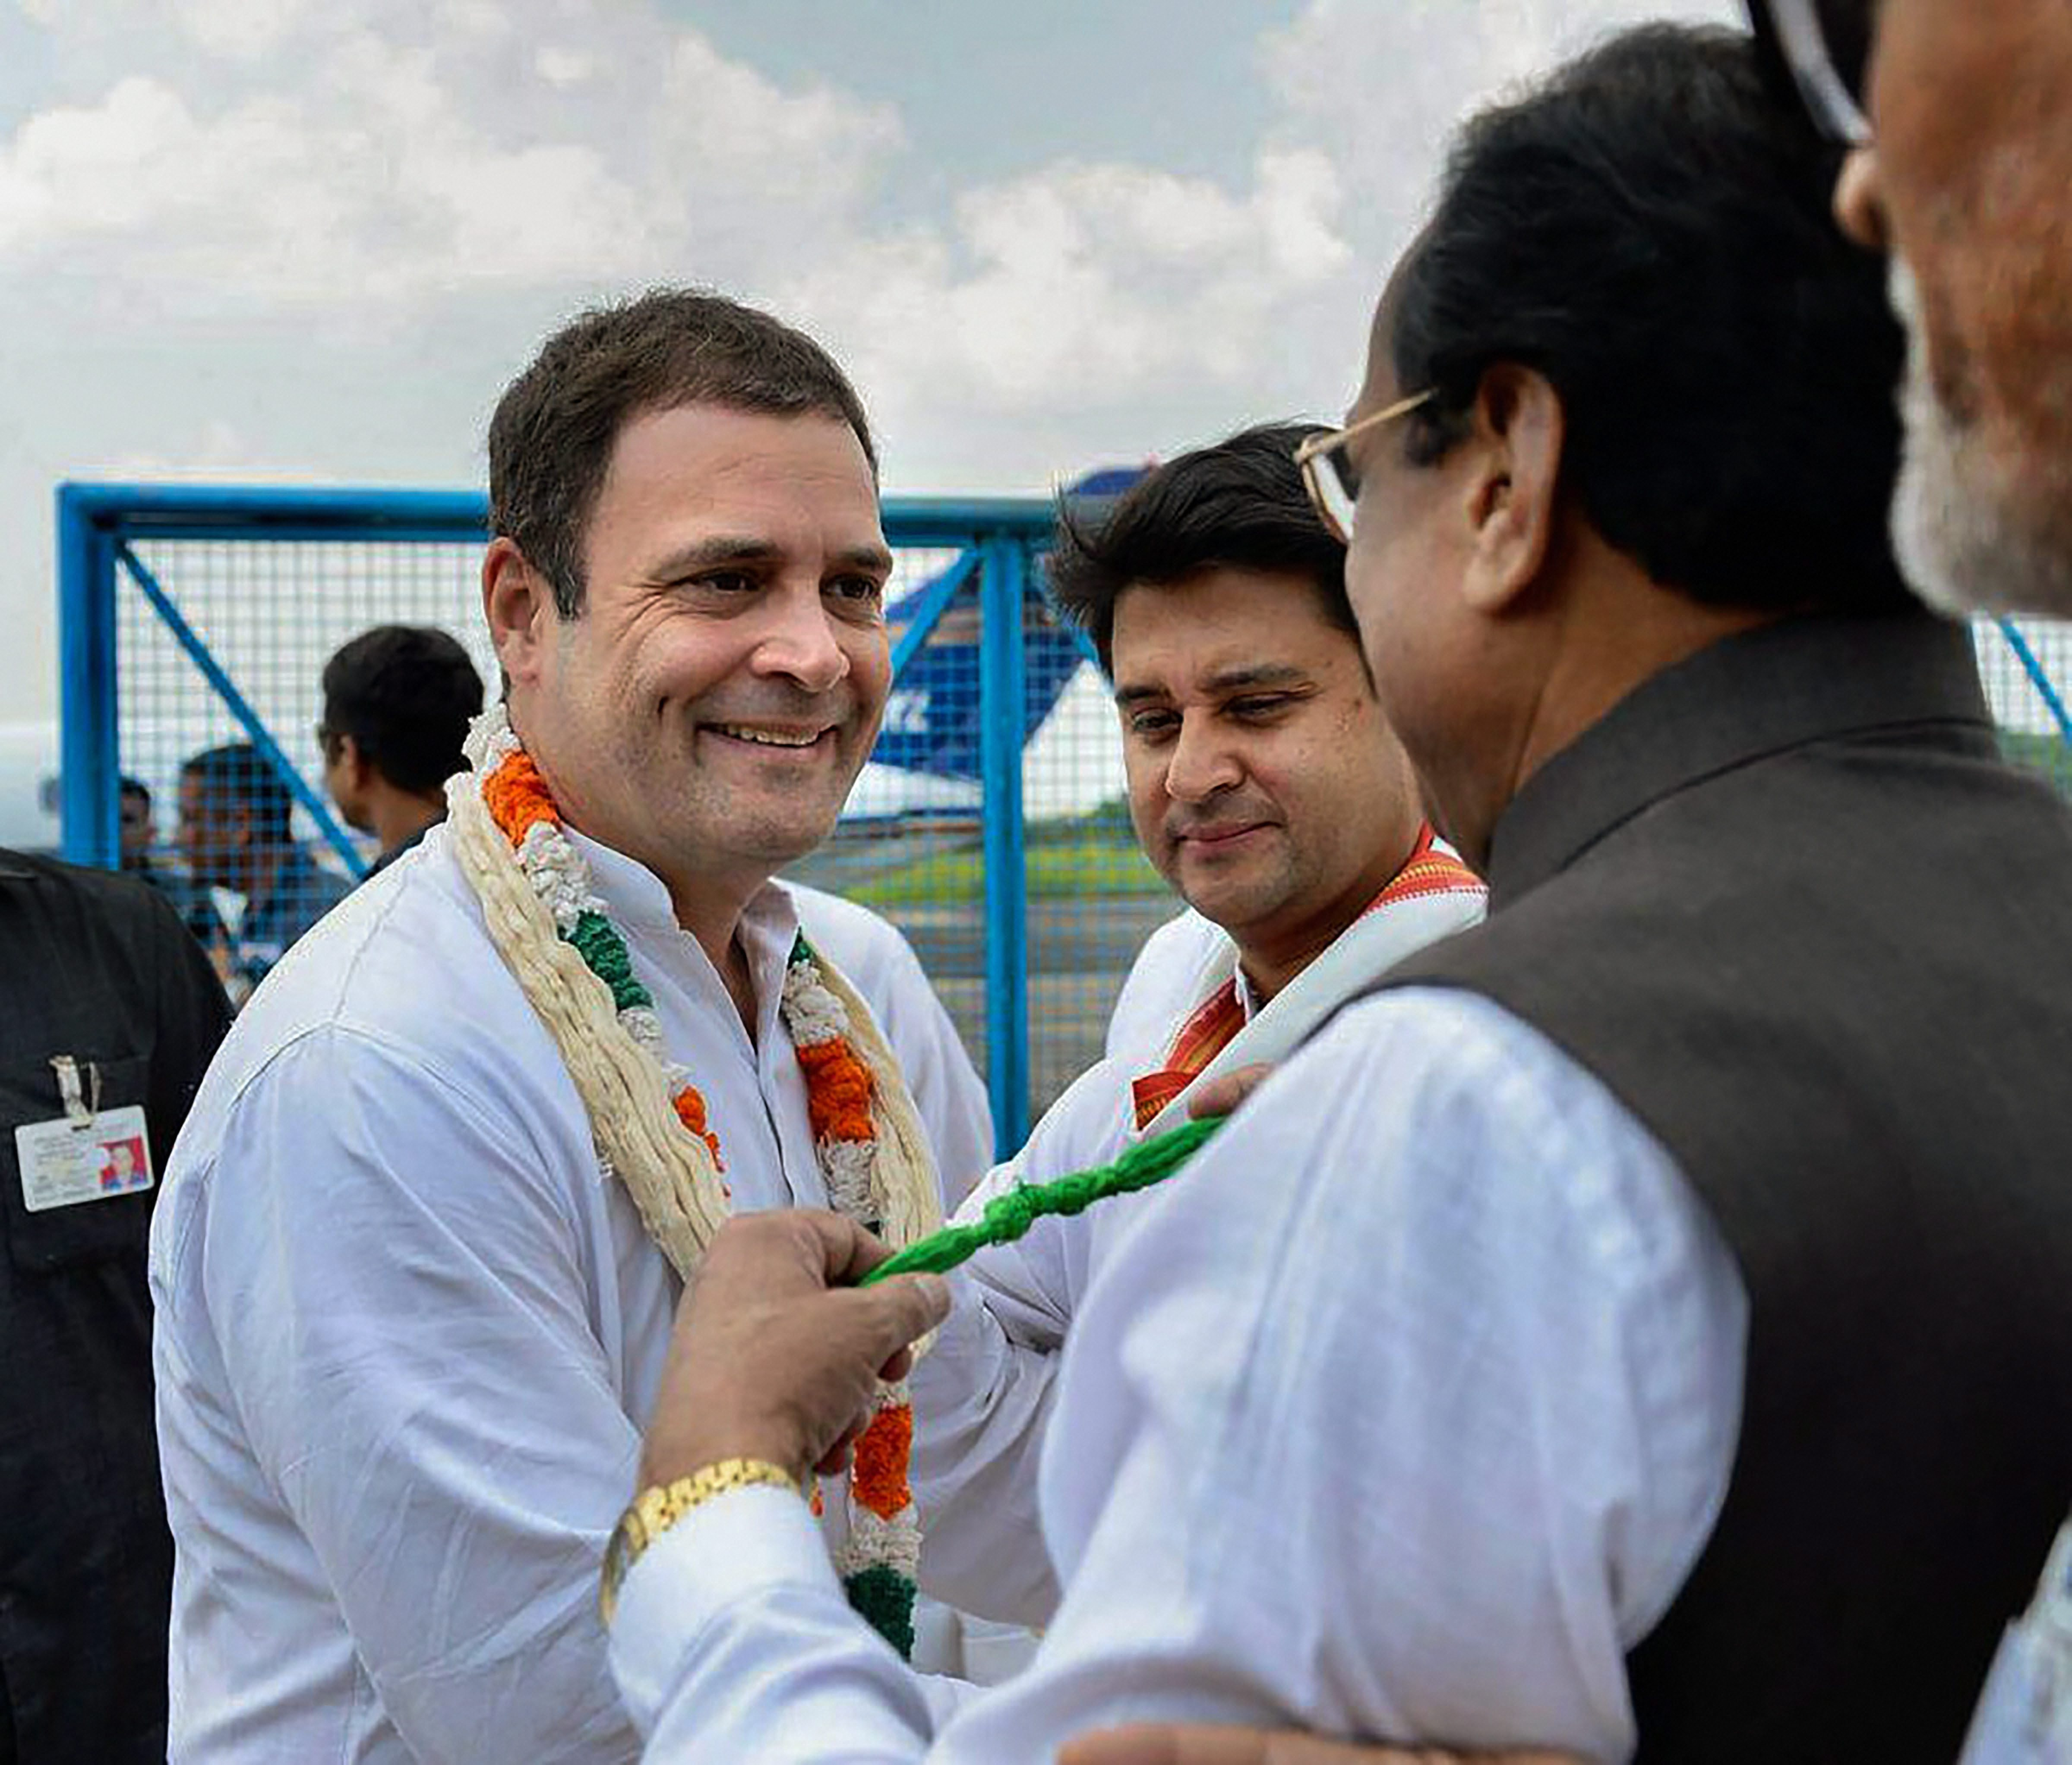 Congress President Rahul Gandhi is greeted by State President Kamal Nath as Congress leader and MP Jyotiraditya Madhavrao Scindia looks on, at the airport ahead of a roadshow, in Bhopal - PTI